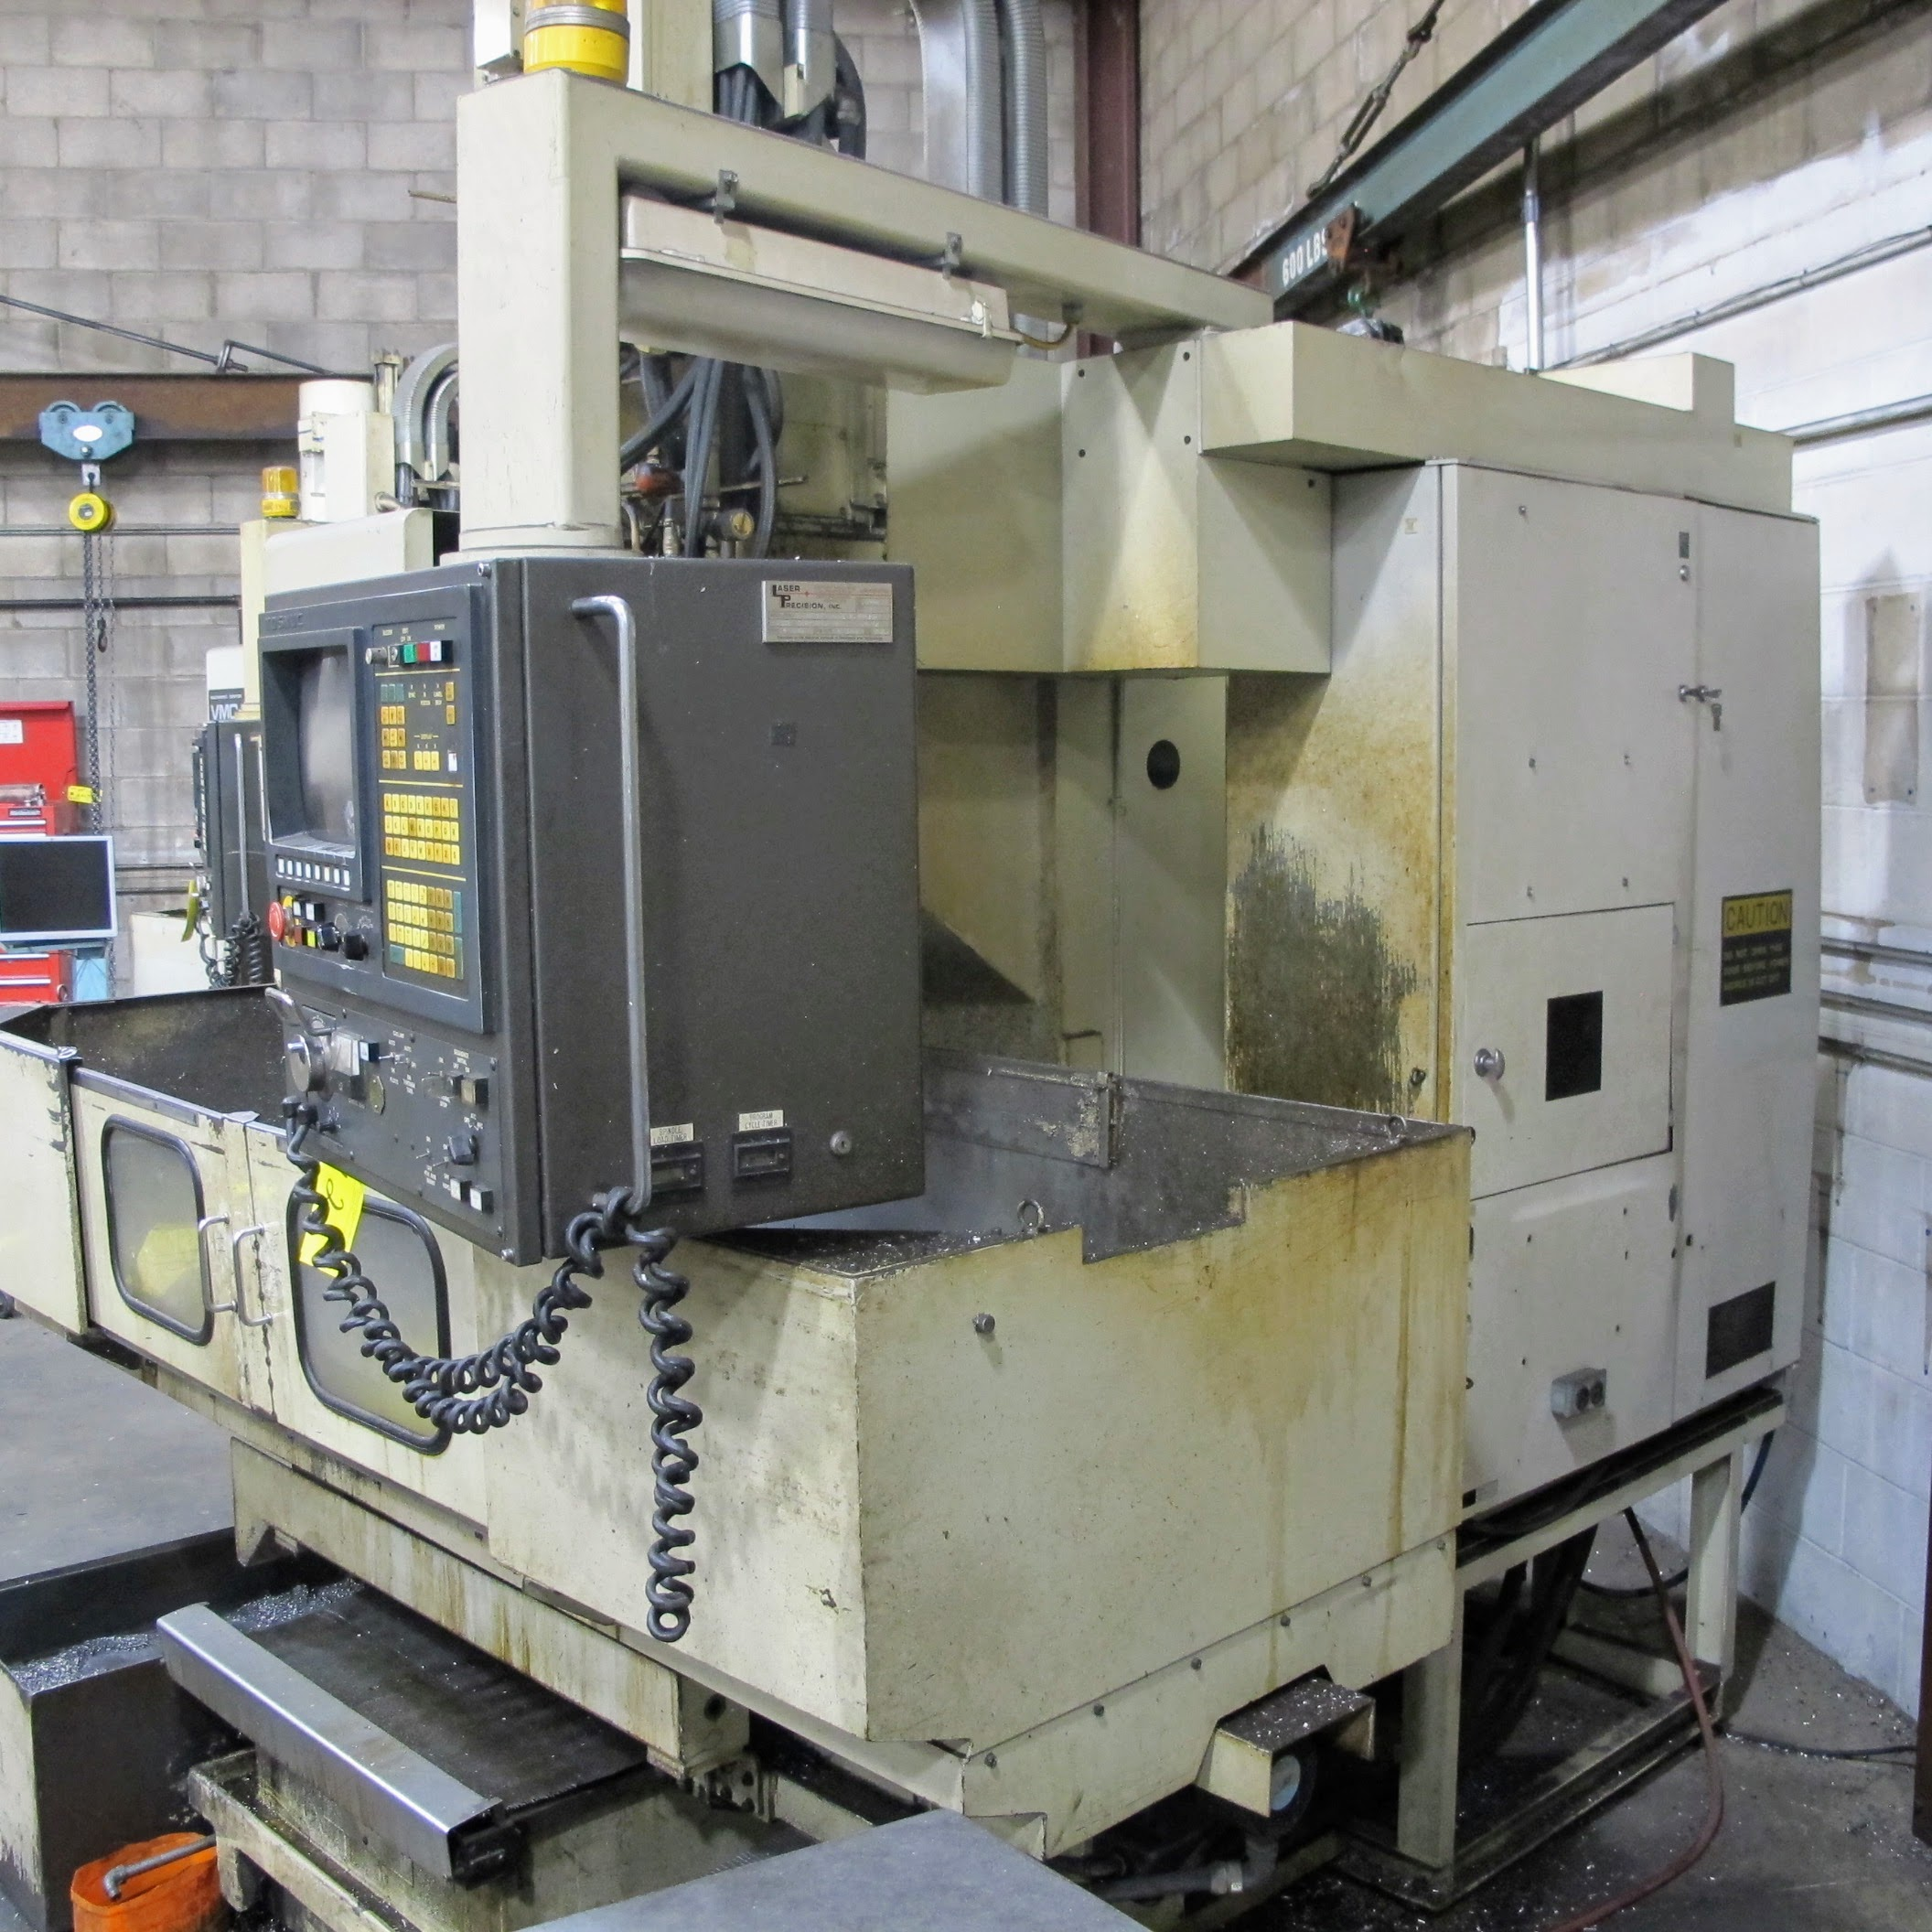 "SHIBAURA VMC-45 CNC VERTICAL MACHINING CENTER, 18"" X 40"" TABLE, TOSNUC CNC CONTROLS, 20 ATC, COOLING - Image 2 of 5"